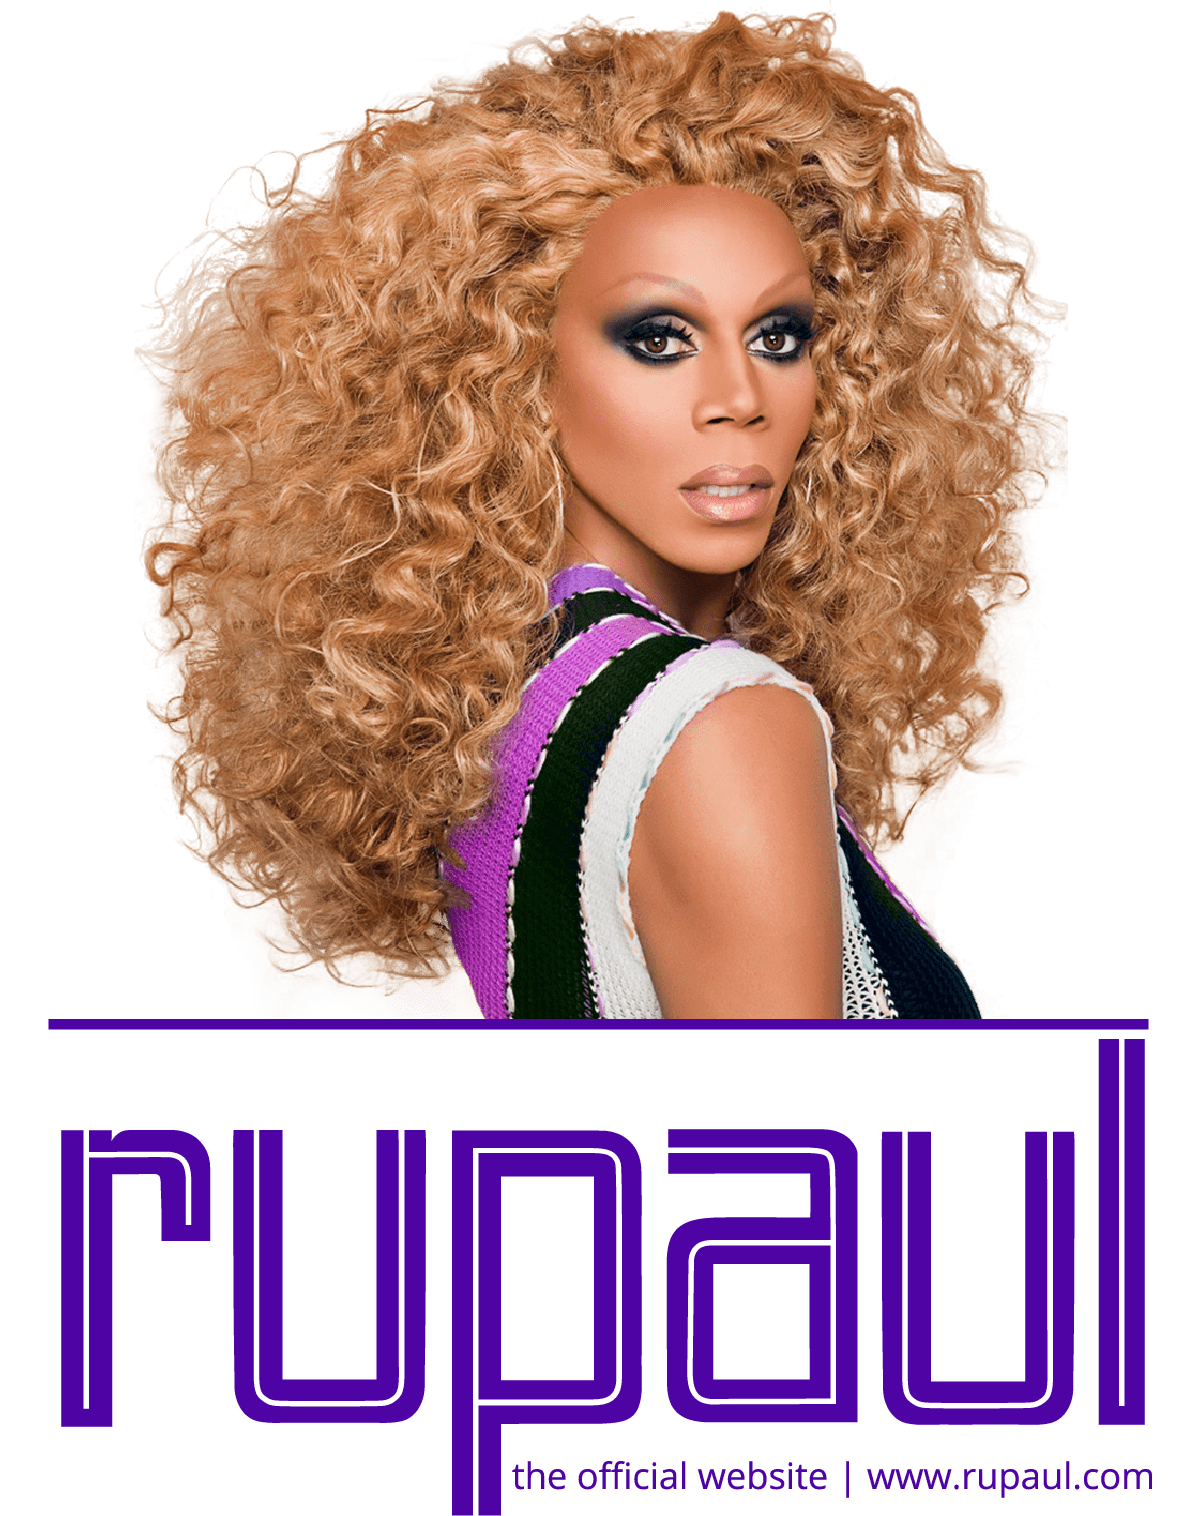 Rupaul drawing gallery. Official site